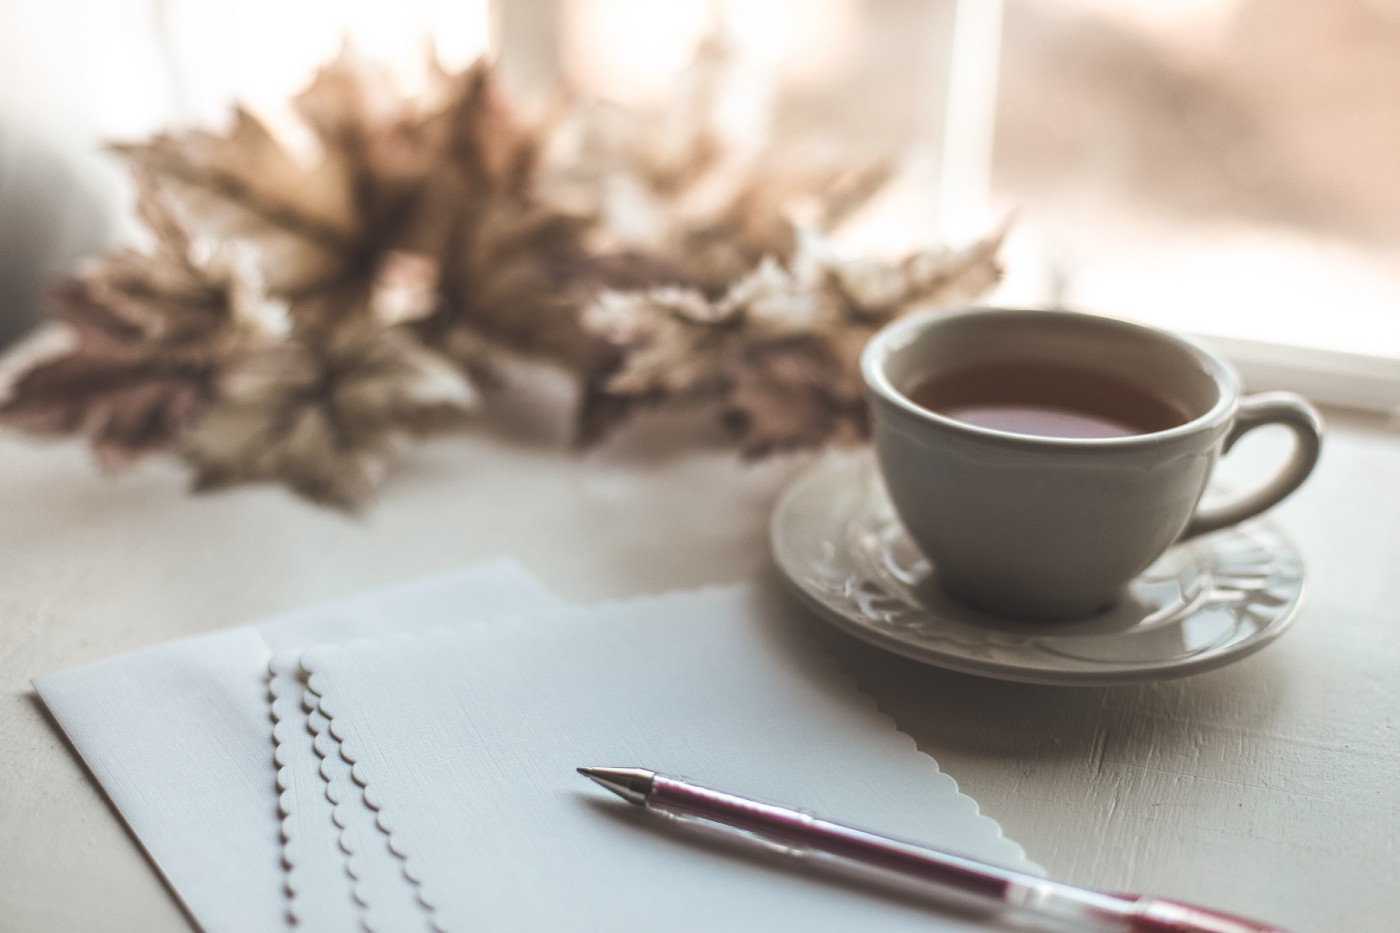 A Day in the Life of an Aspiring Writer—Prompt 1